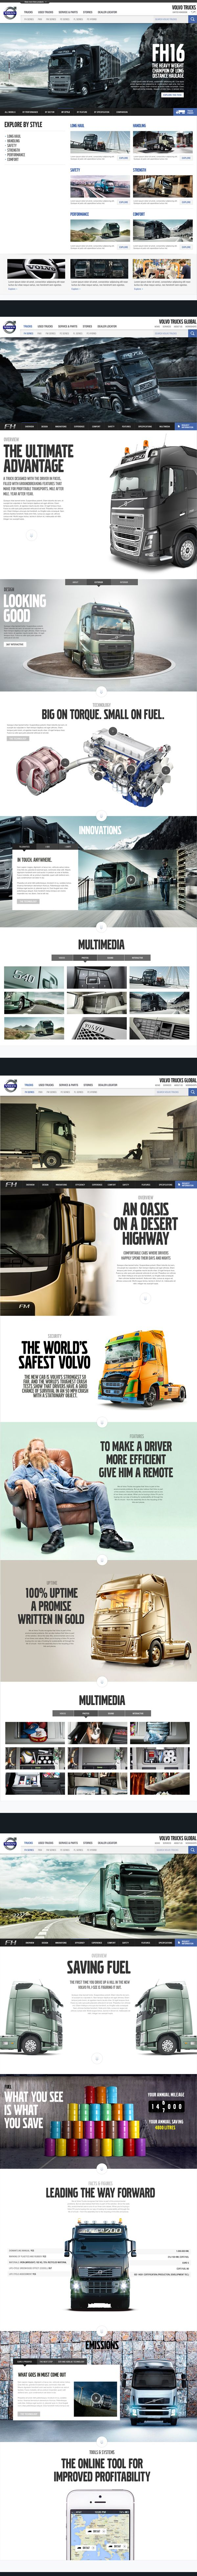 Taking what would otherwise be a boring industrial website and making it look sexy - Volvo Trucks does an incredible job. #webdesign #industrial #inspiring